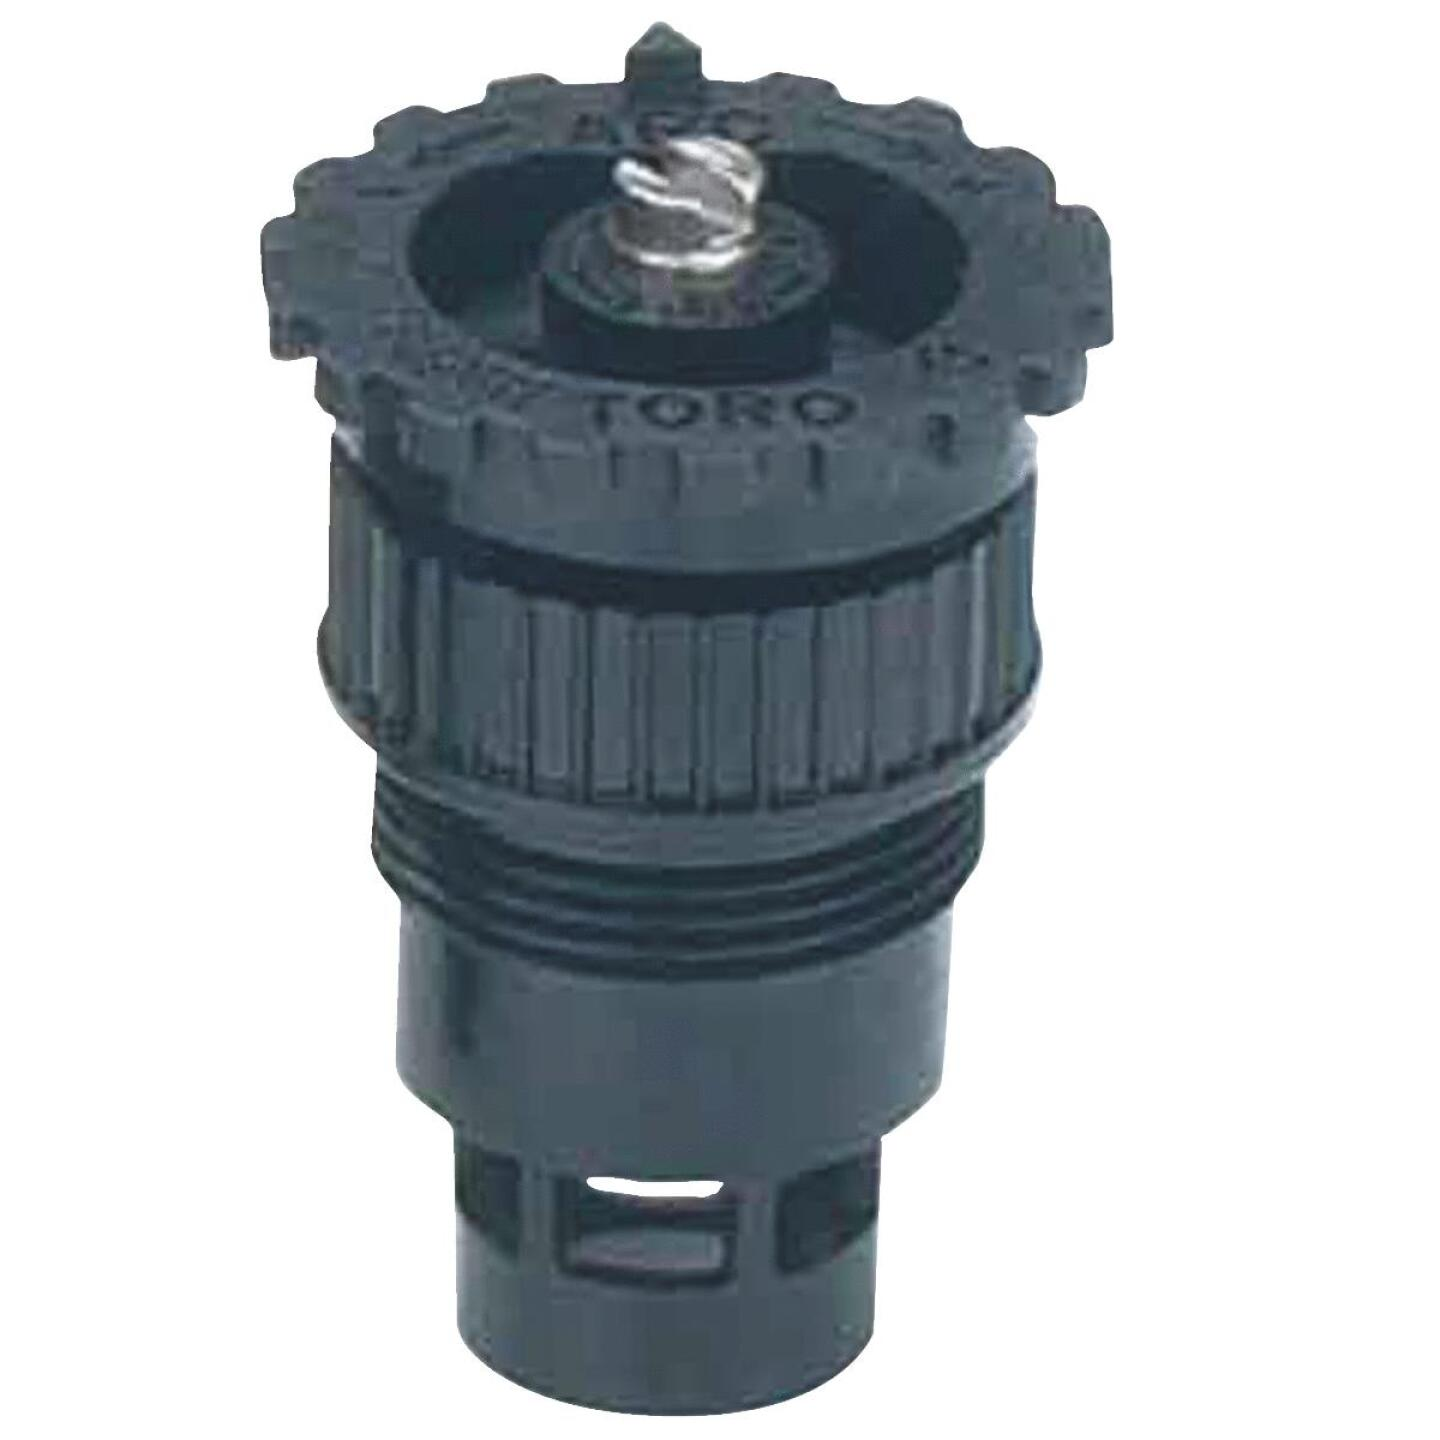 Toro 360 Deg. Adjustable Replacement Nozzle Image 1